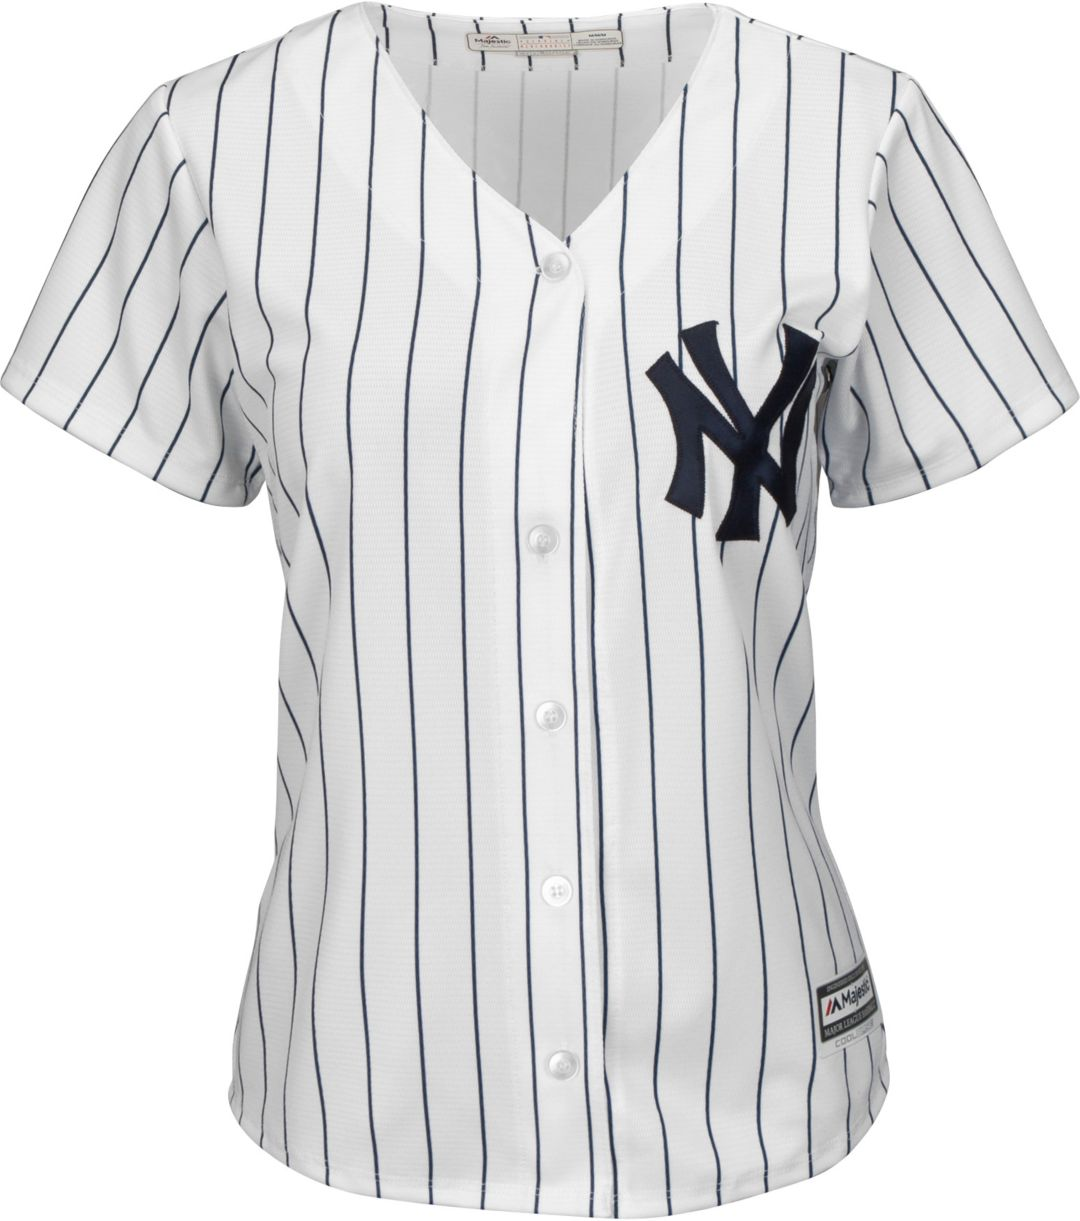 reputable site b255b d60ed Majestic Women's Replica New York Yankees Cool Base Home White Jersey